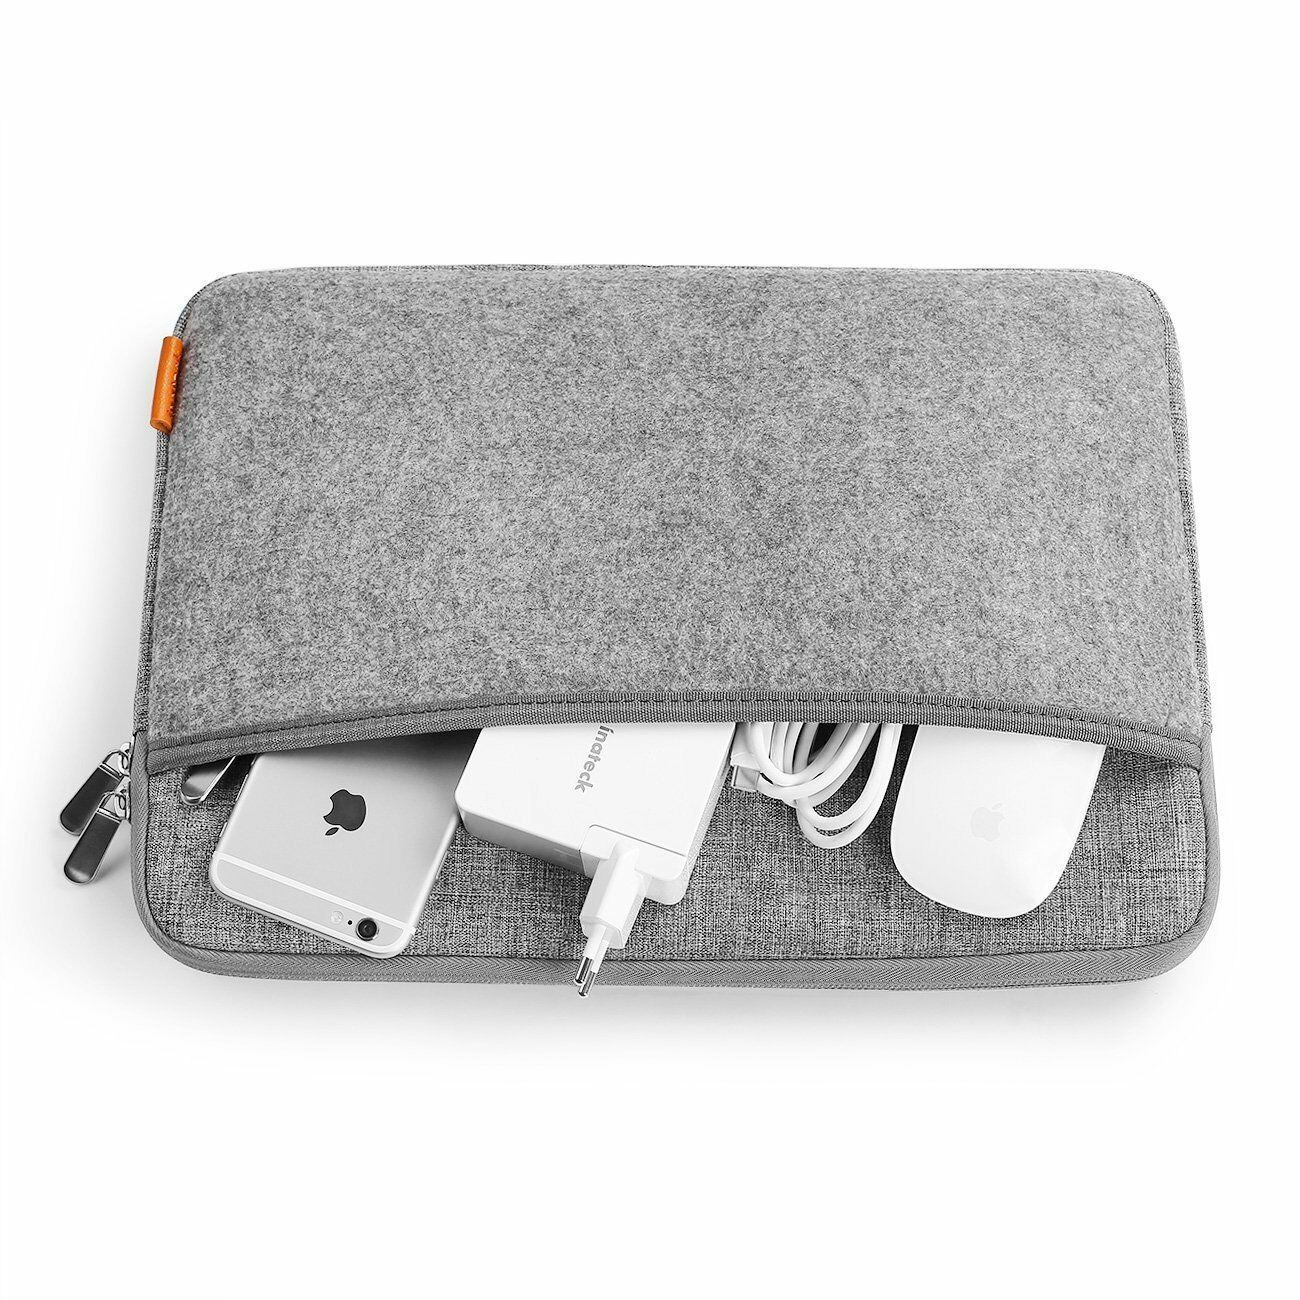 Inateck 13 Inch MacBook Air/Pro Felt Laptop Sleeve LB01001, Light Gray